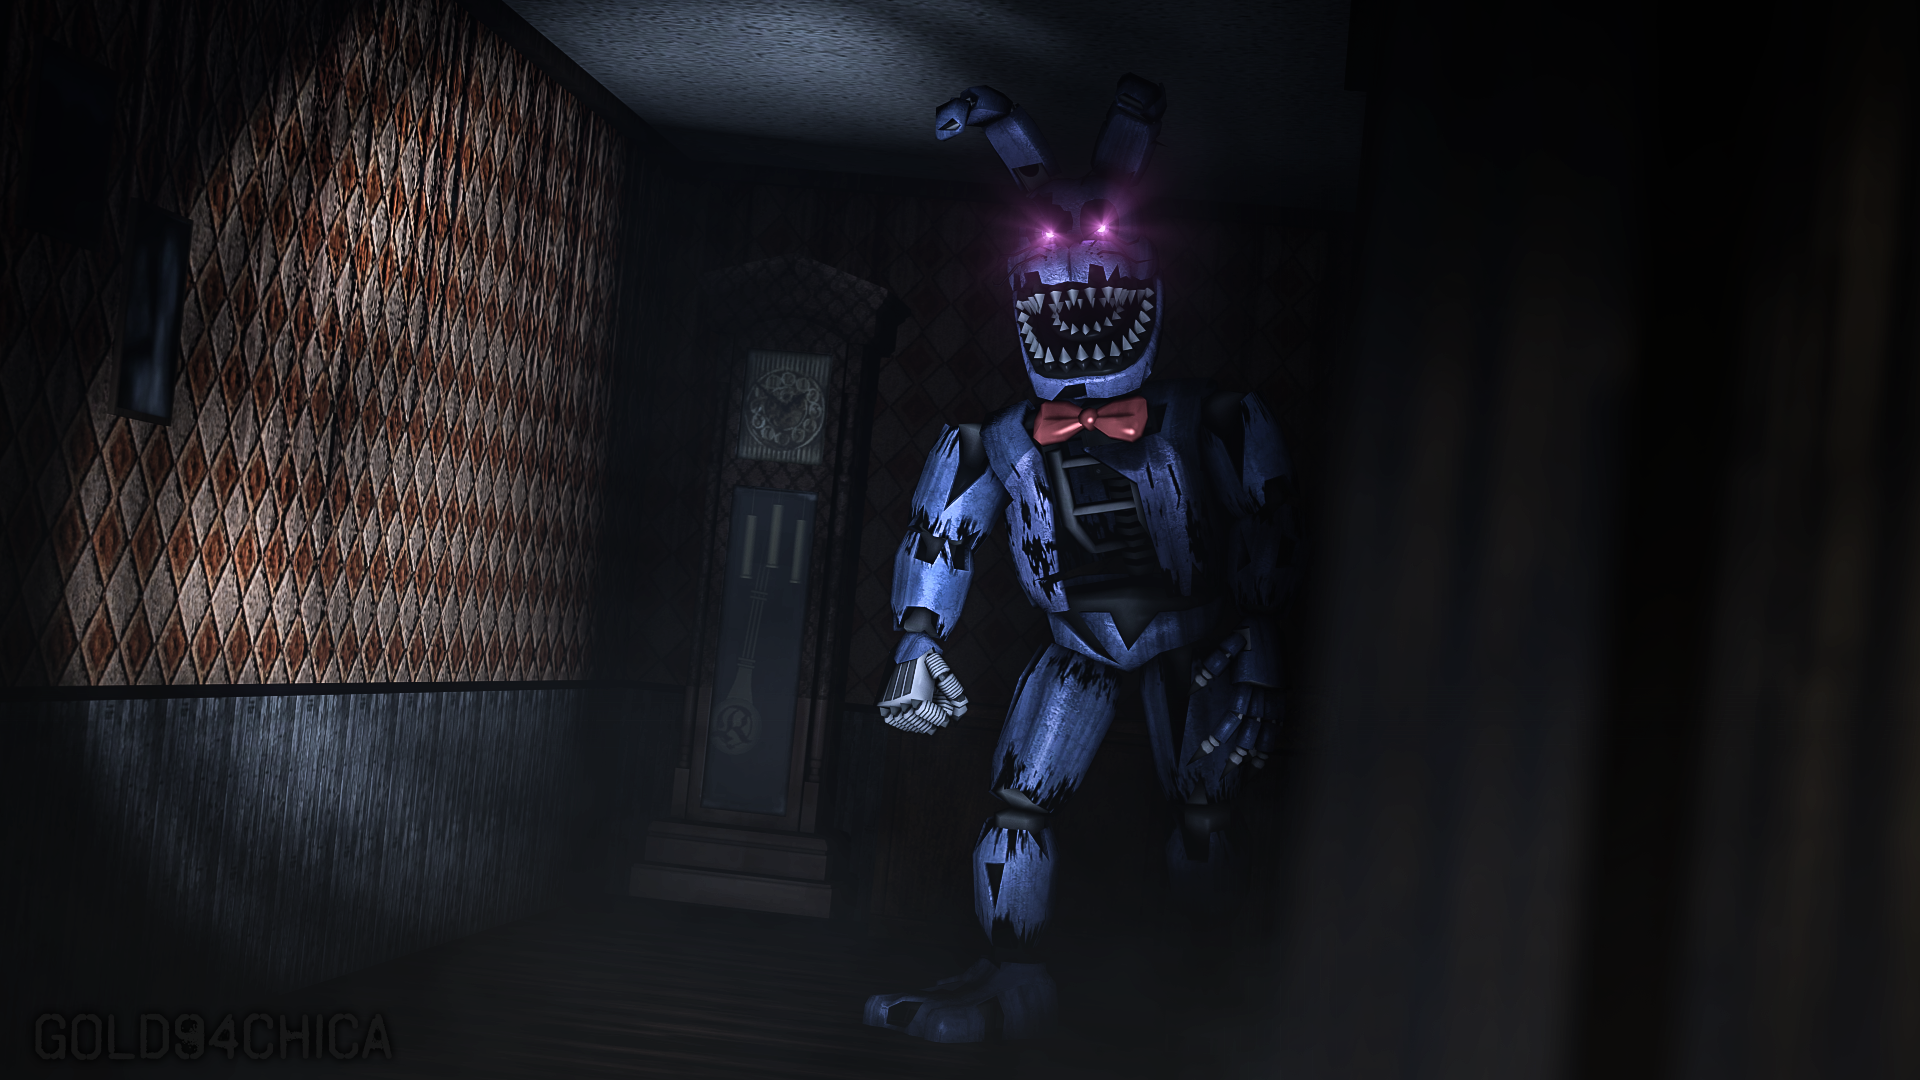 how tall is nightmare bonnie?